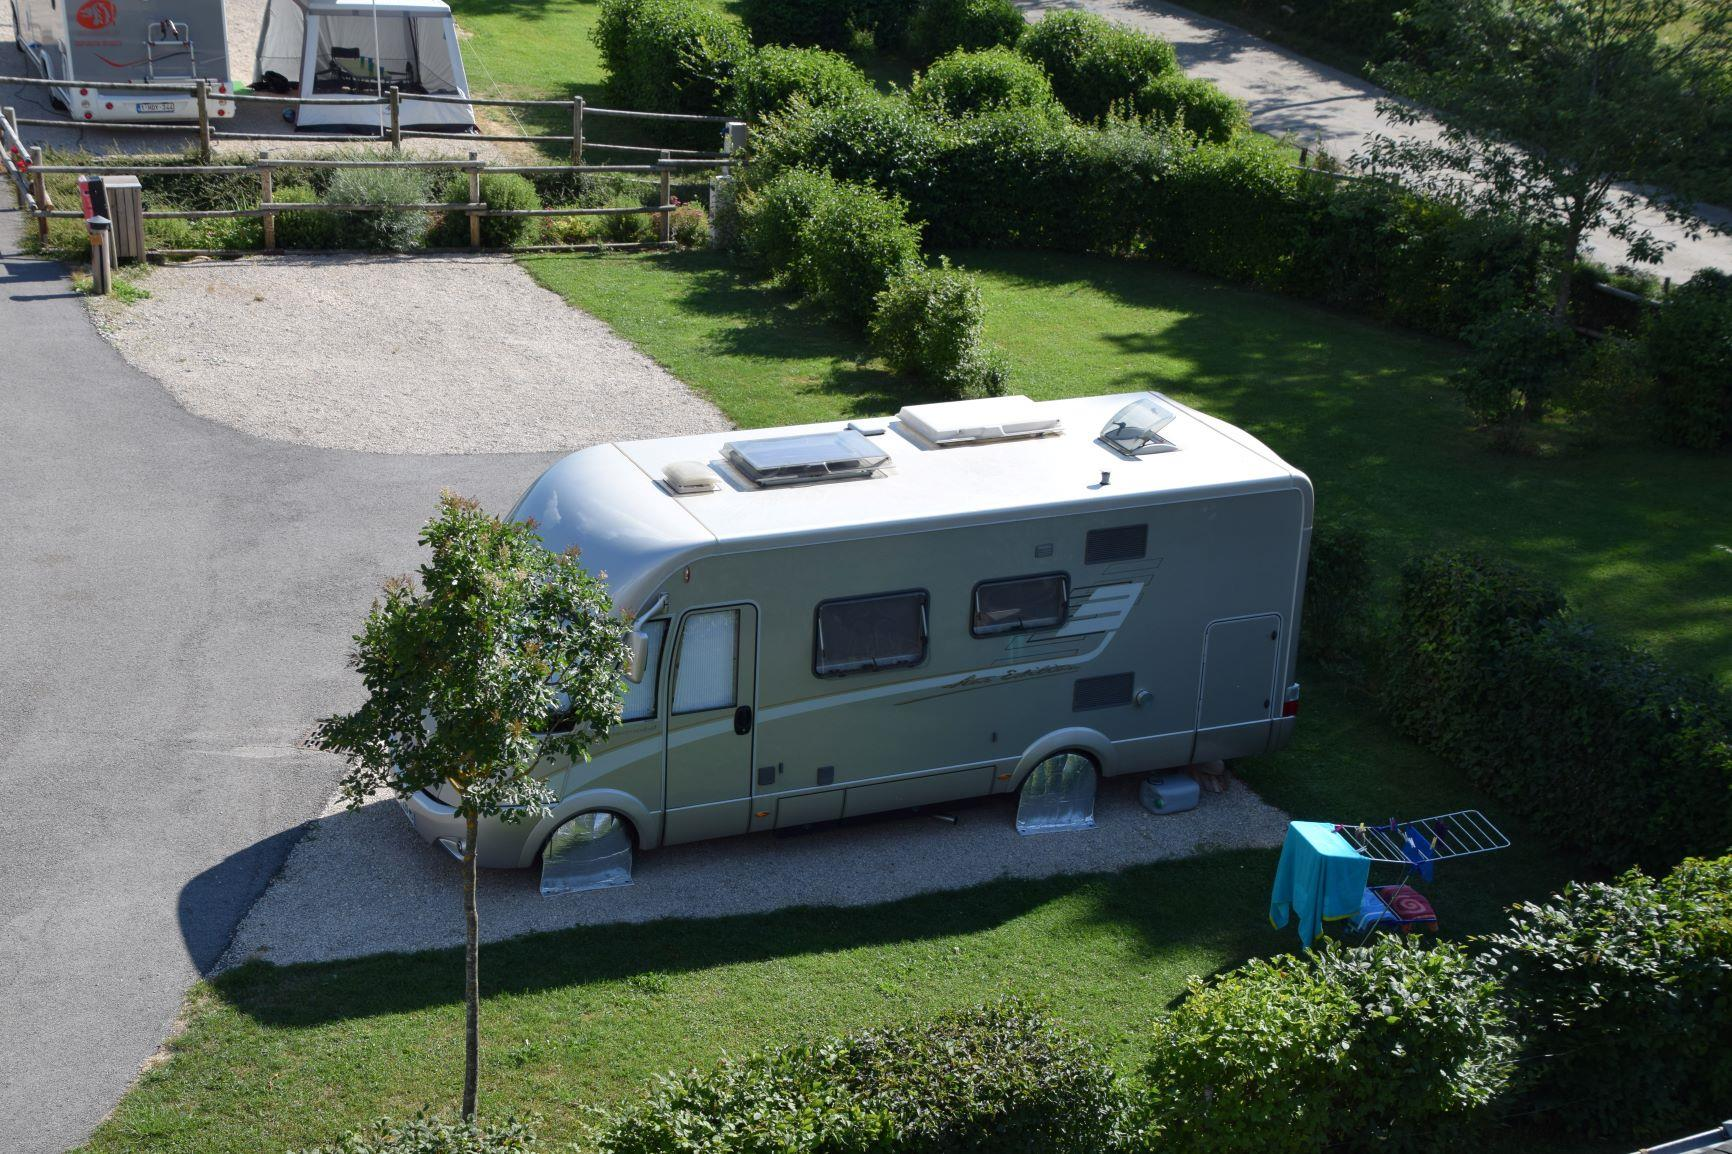 Emplacement - Emplacement Camping Car - Camping Les 12 Cols